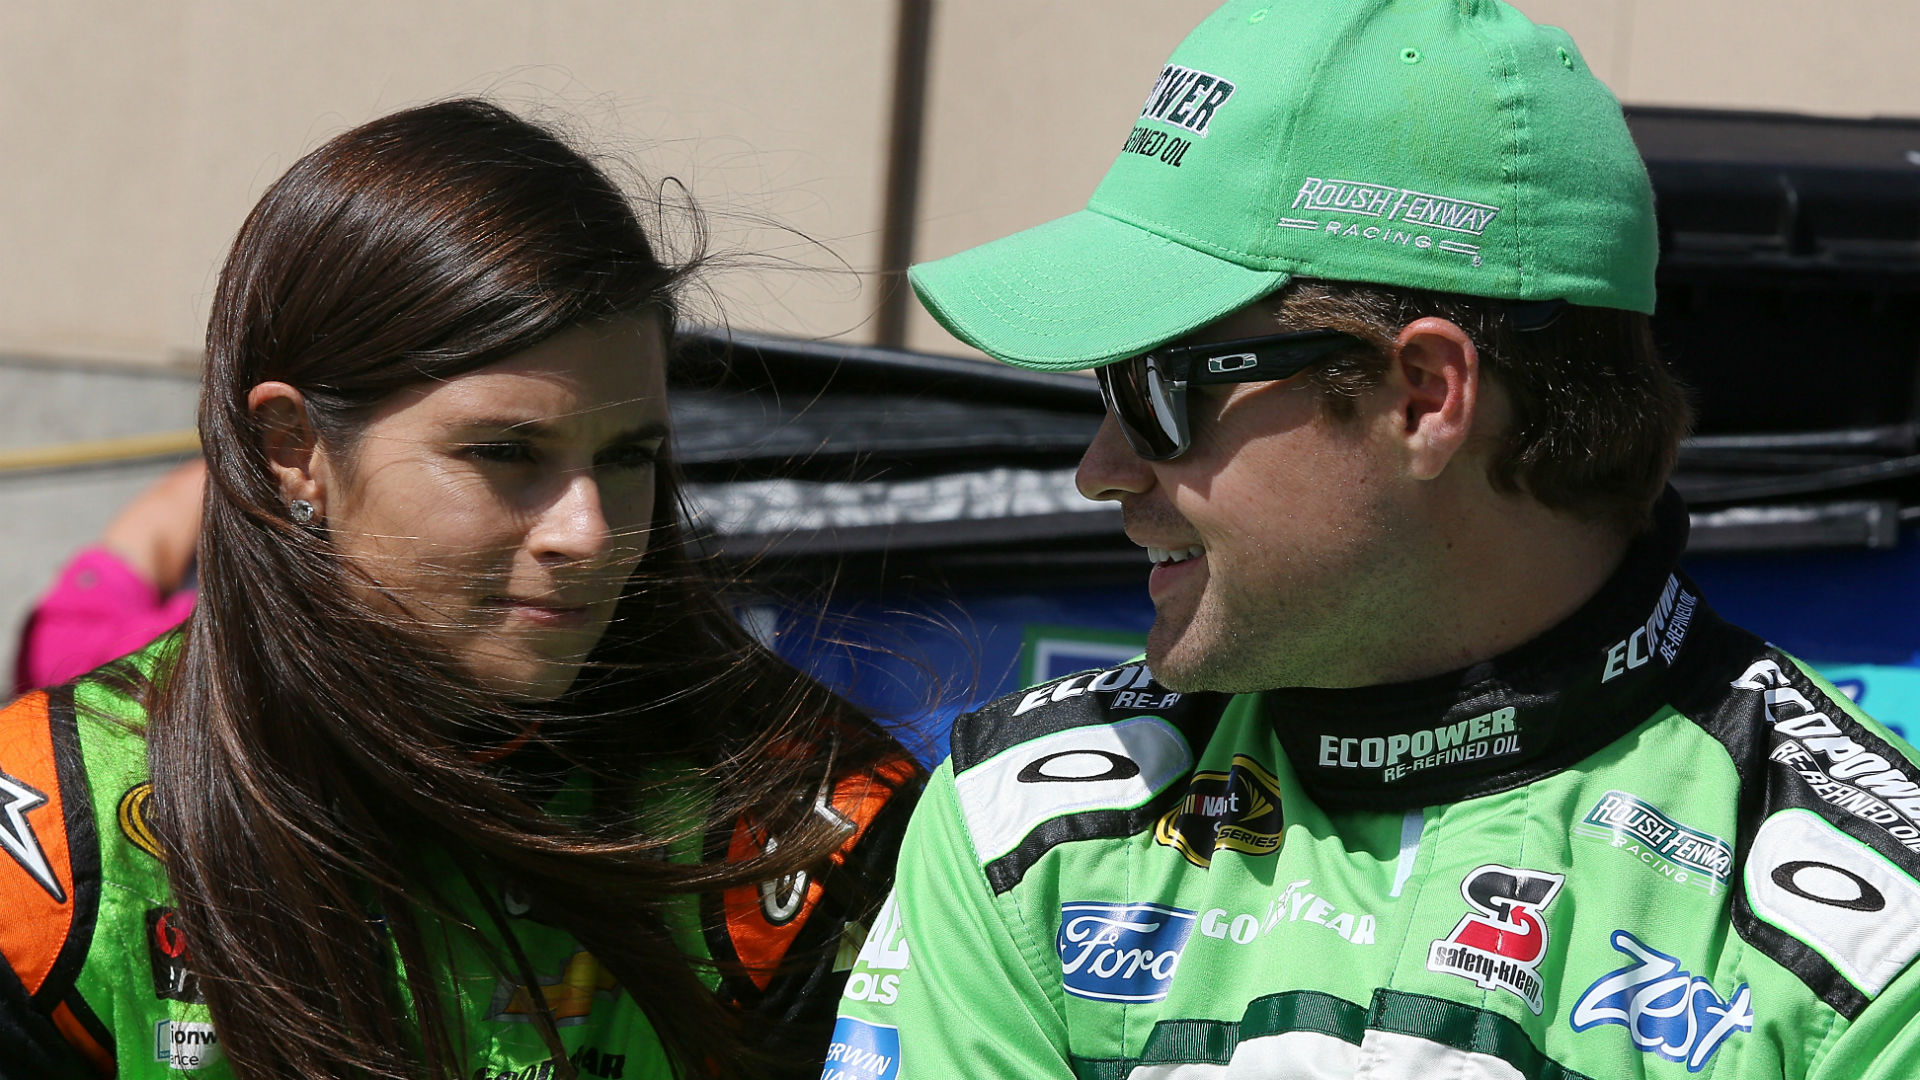 NASCAR couple Danica Patrick, Ricky Stenhouse Jr. split after 5 years